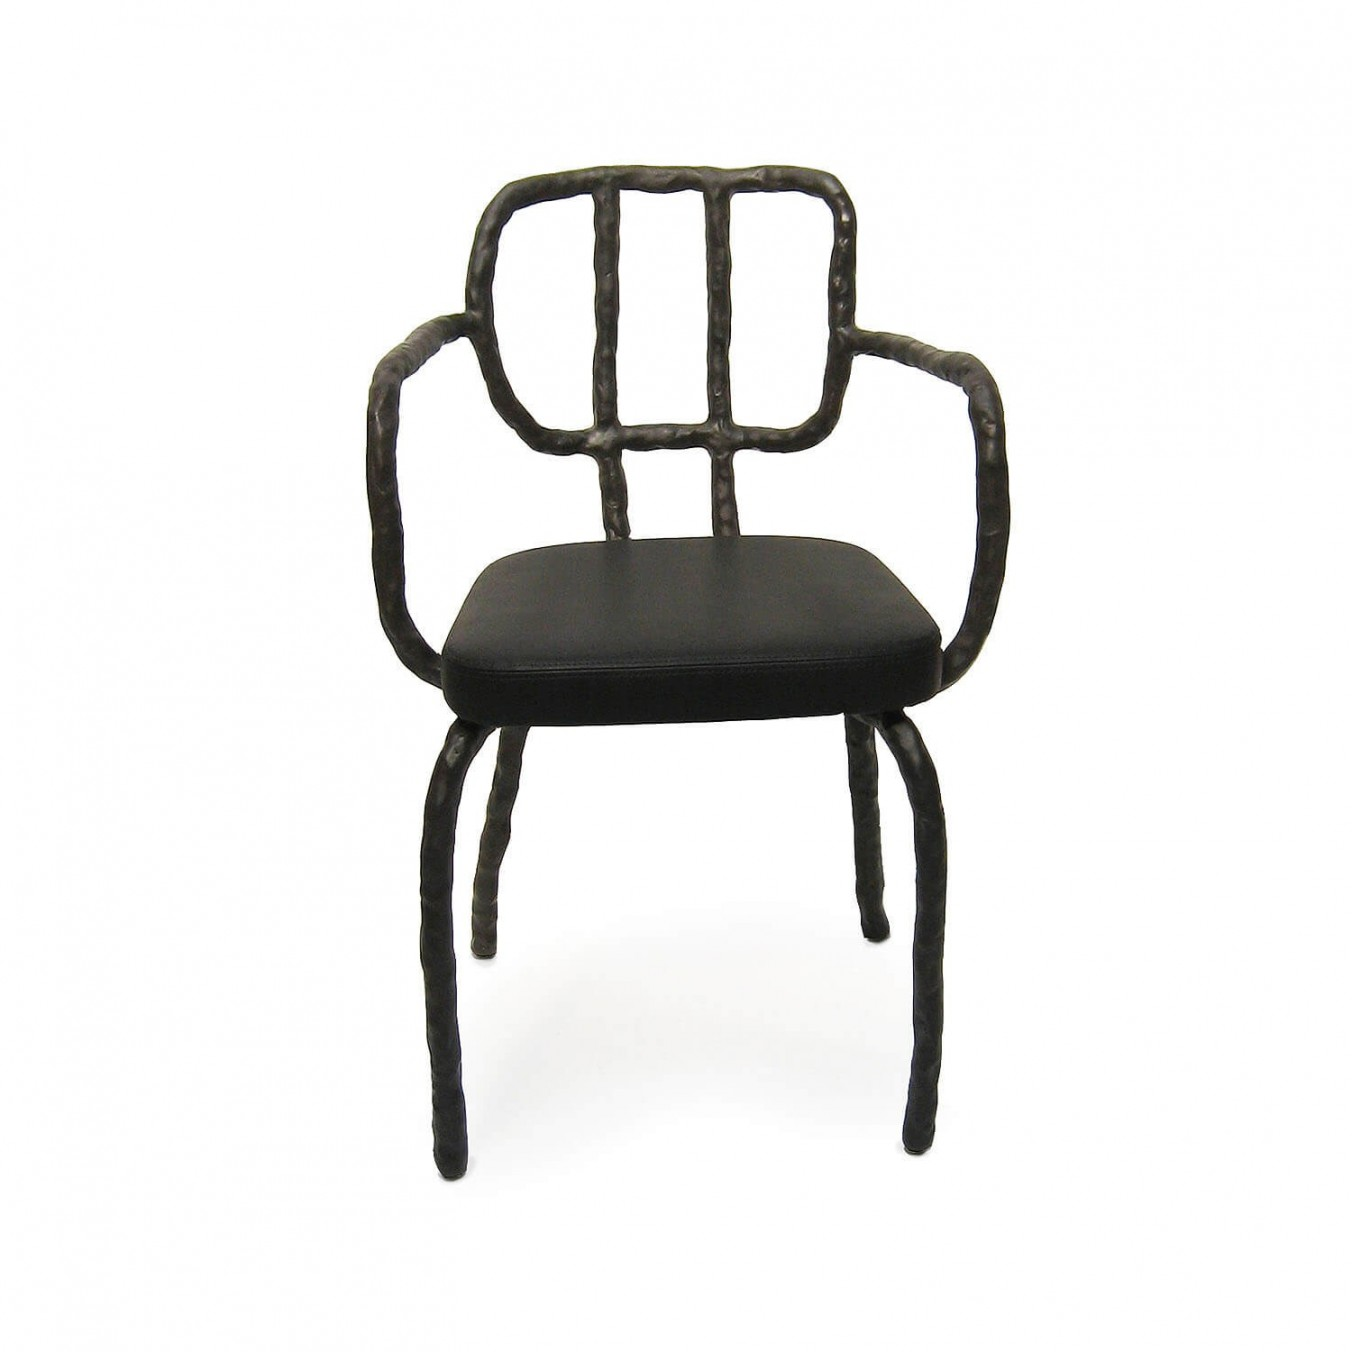 Plain Clay dining chair with arm